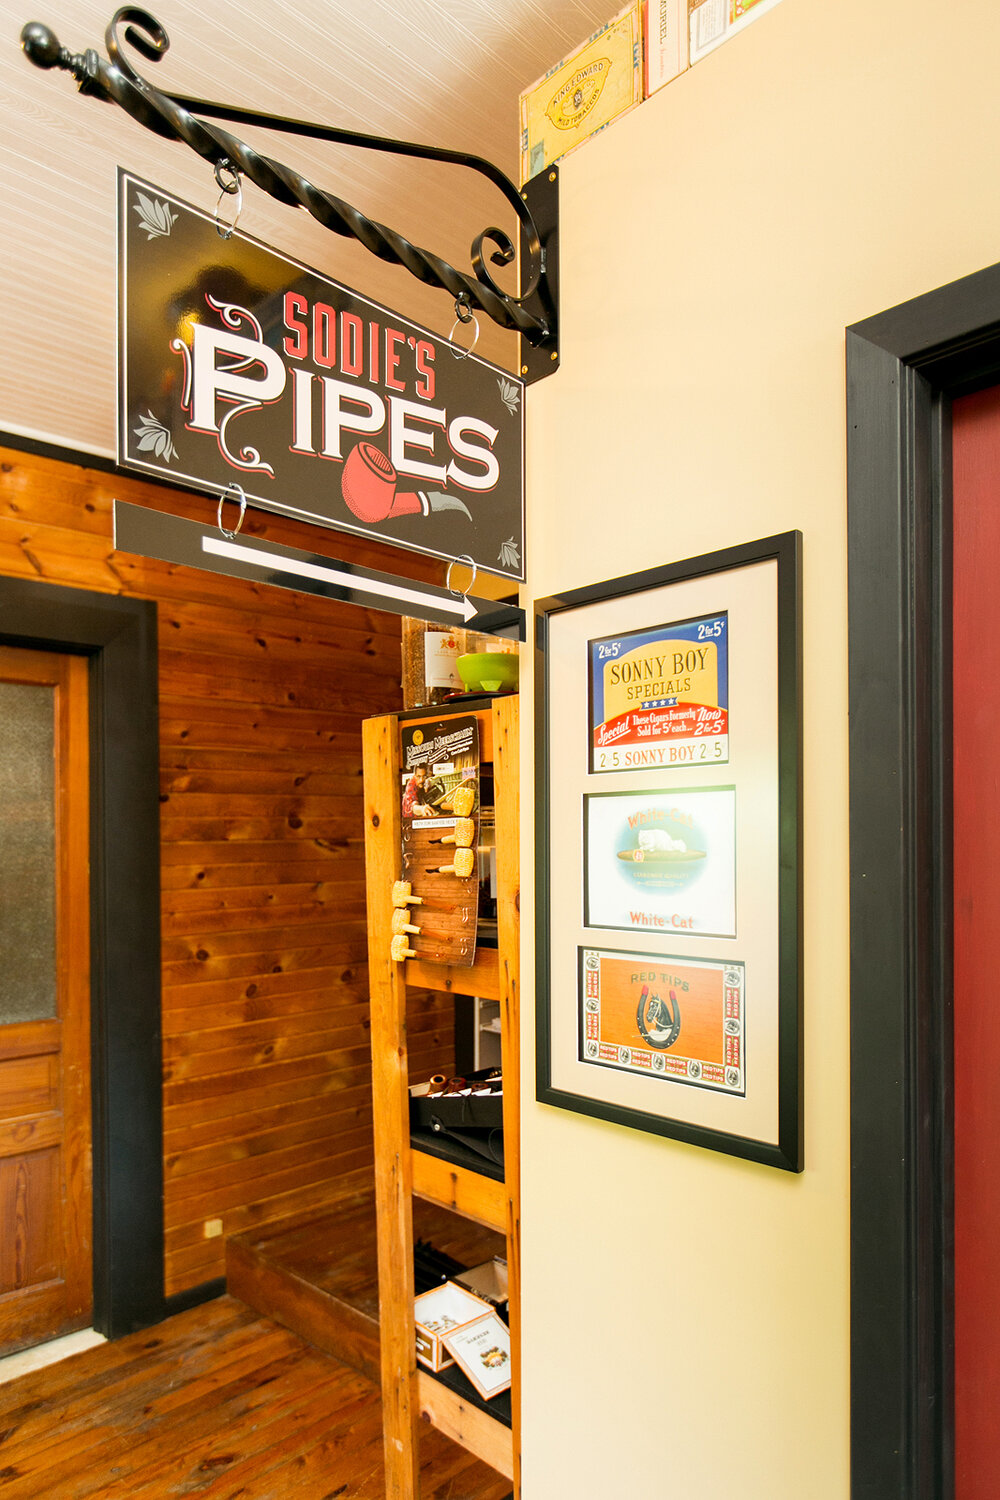 Sodie's Pipes. Photo by Kristina Marshall.